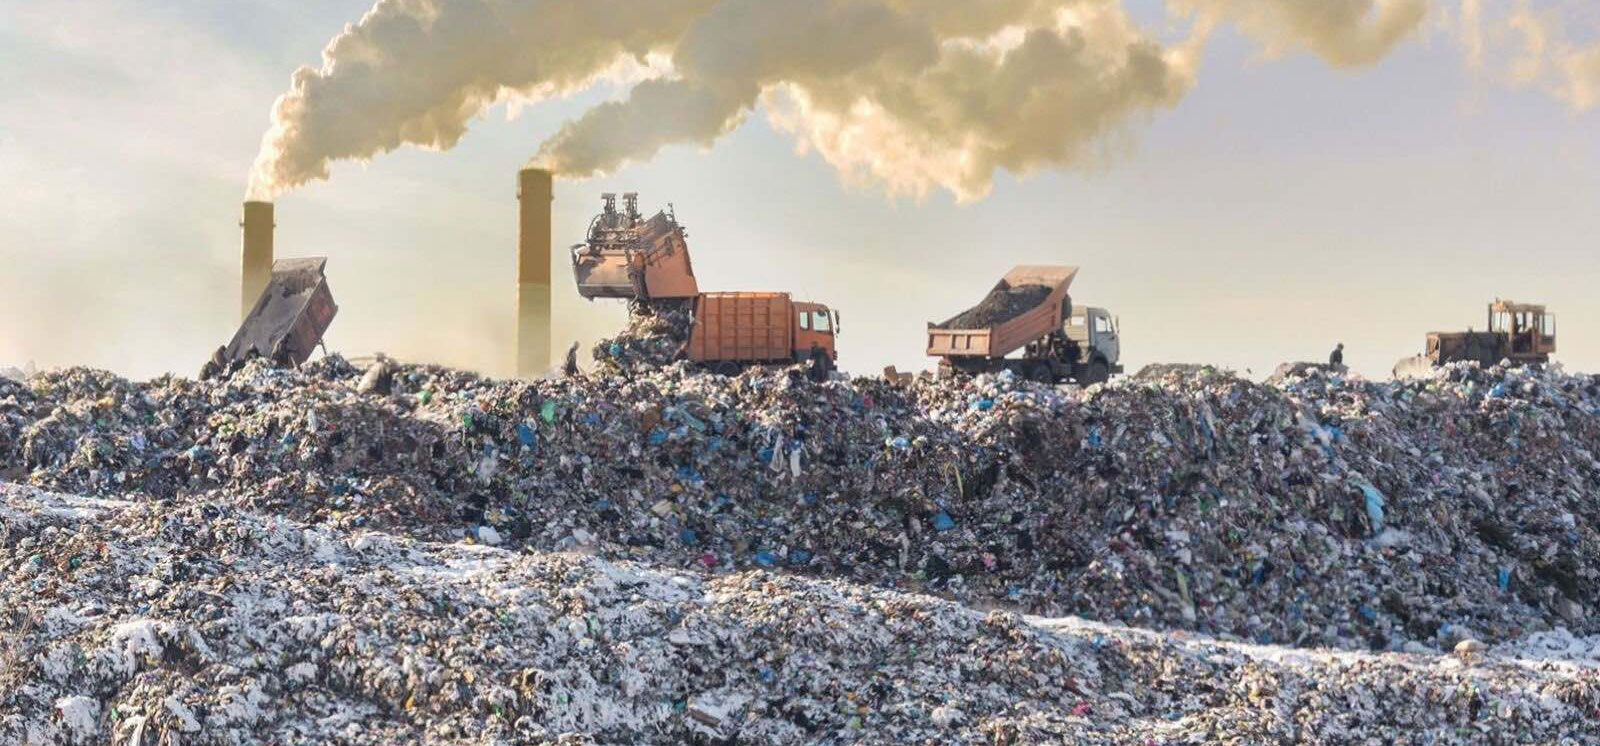 """<h4>ZERO WASTE</h4><p>The U.S. produces an immense amount of waste and the vast majority is sent to landfills, incinerators, or the natural environment. We've won numerous state and local plastic bans, and now we're calling on Congress and the Biden administration to stem the tide of single-use plastic waste nationwide.</p><div><a class=""""slideshowButton"""" href=""""#wasteAnchor"""">LEARN MORE</a></div><em>DGL Images via Shutterstock, Matel Kastelic via Shutterstock, pixabay.com, staff.</em>"""